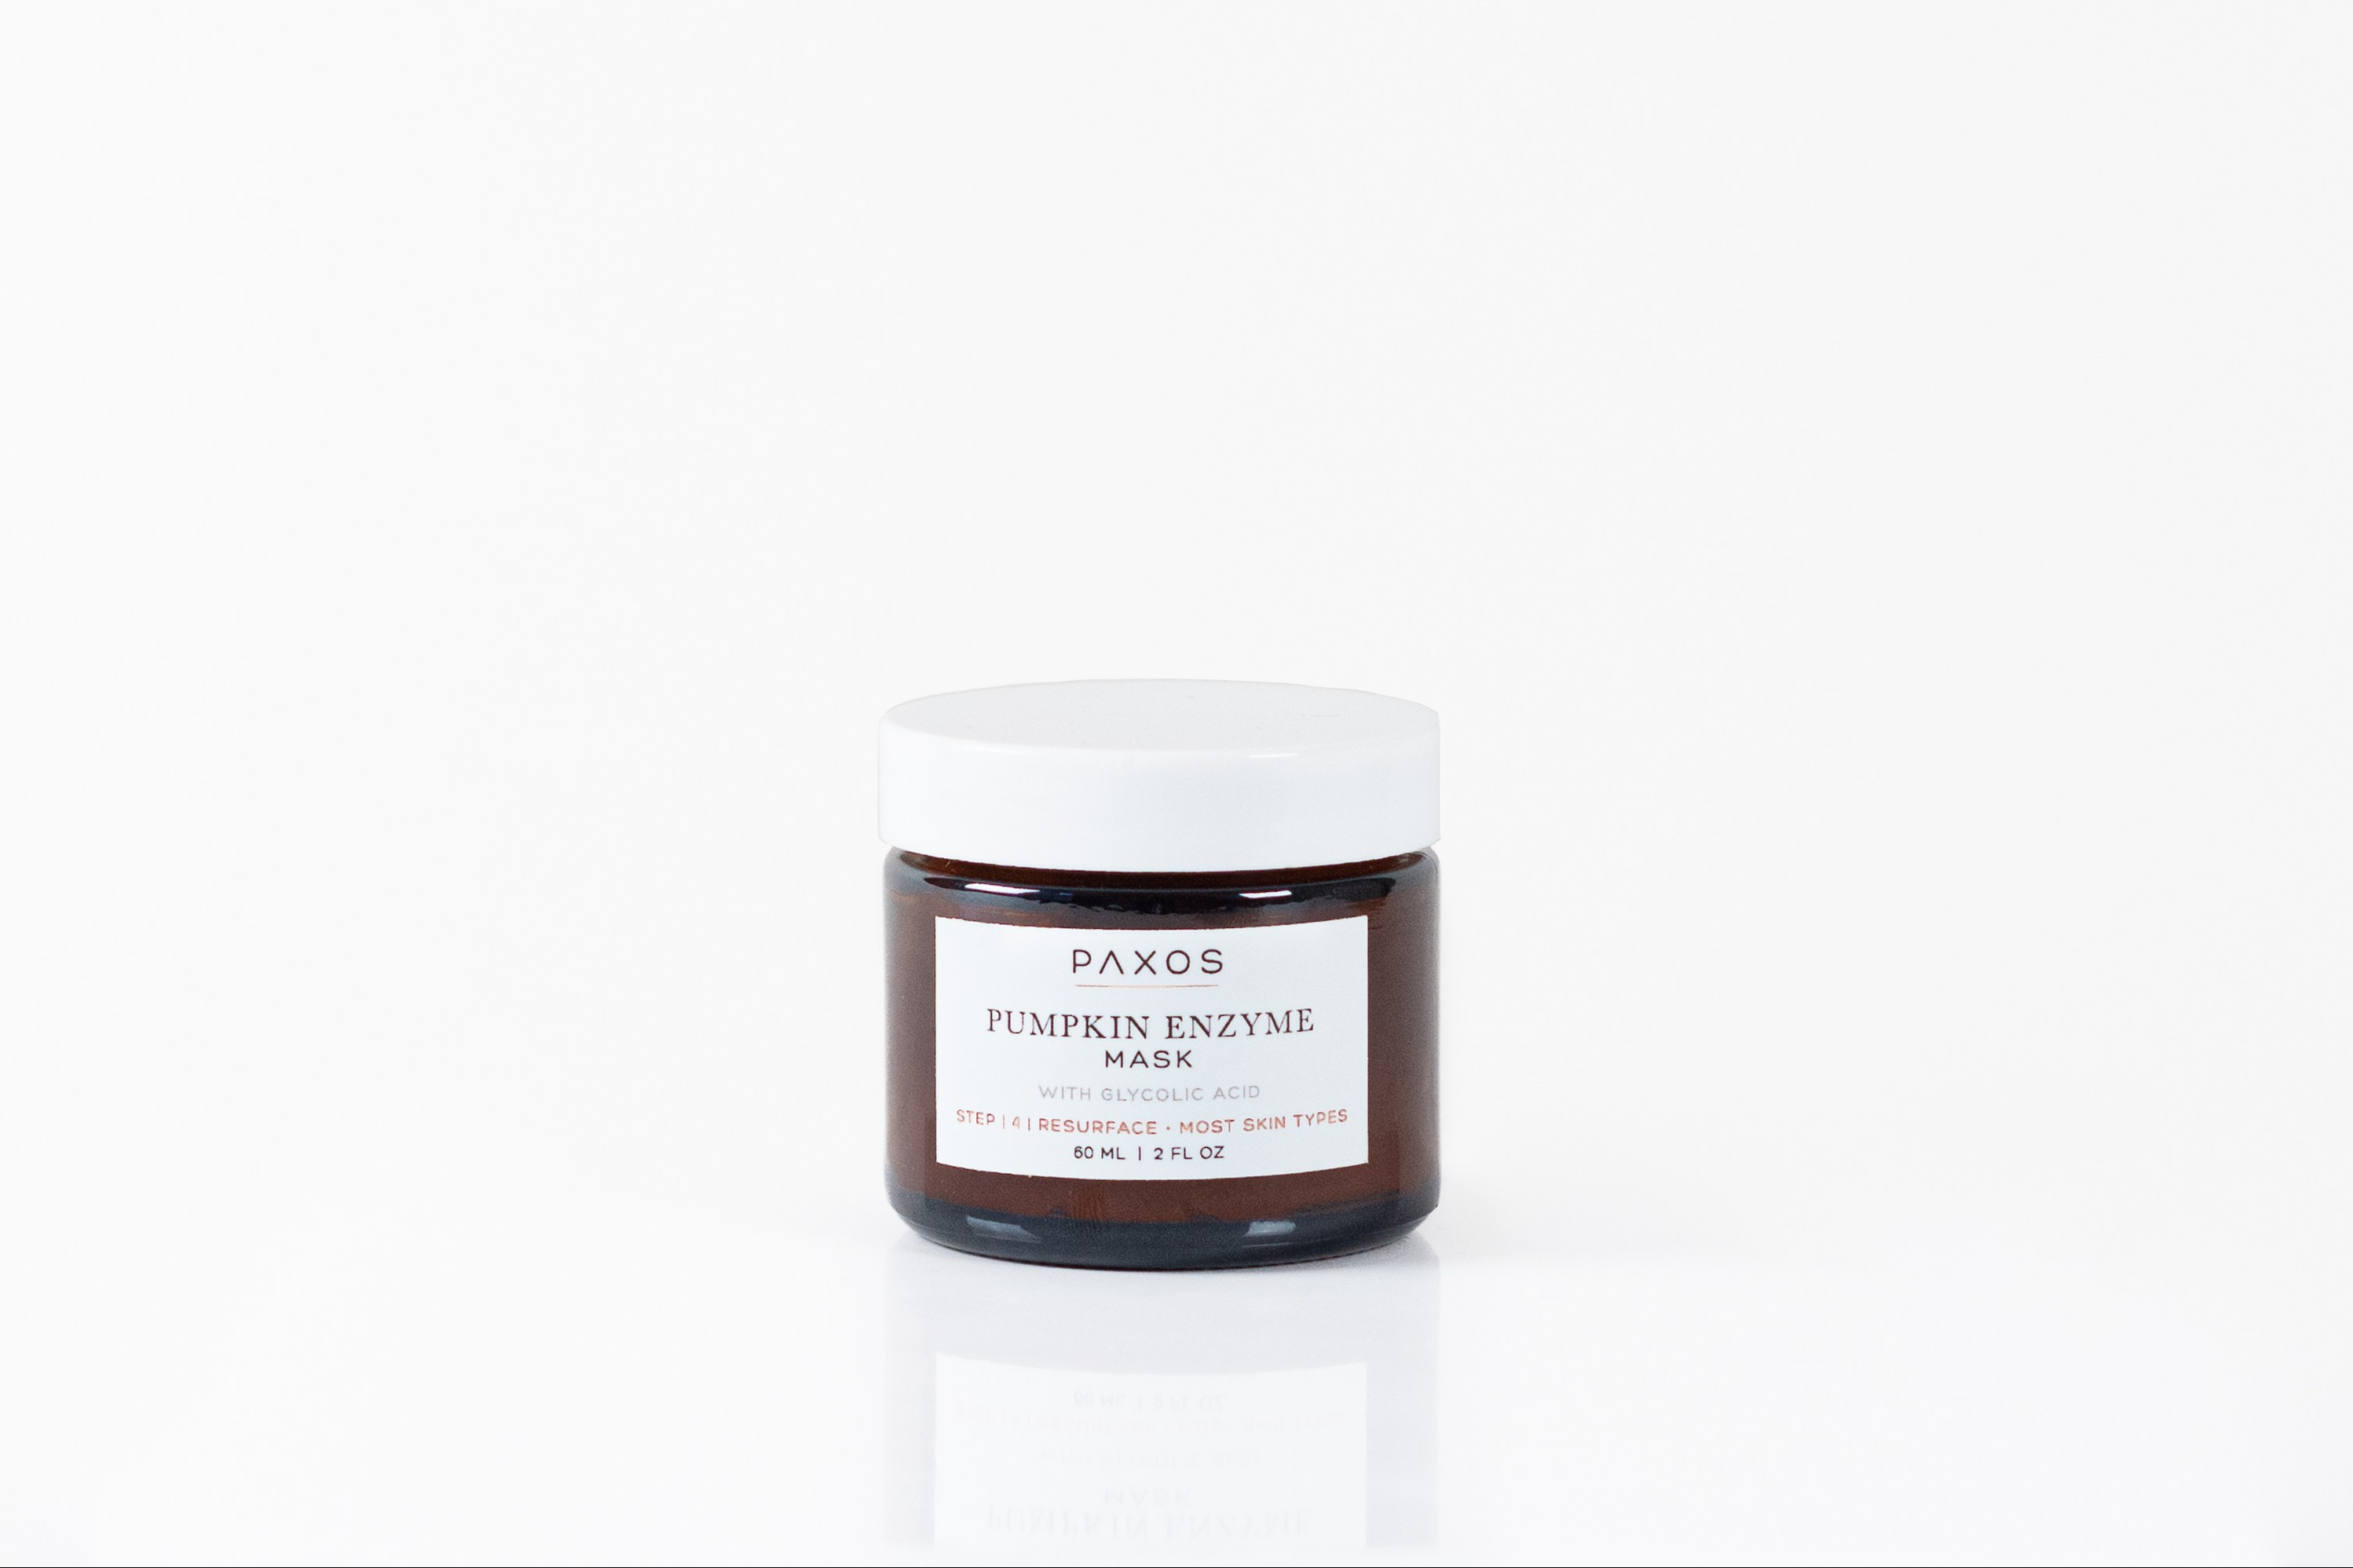 Pumpkin Enzyme face mask ecommerce product on white